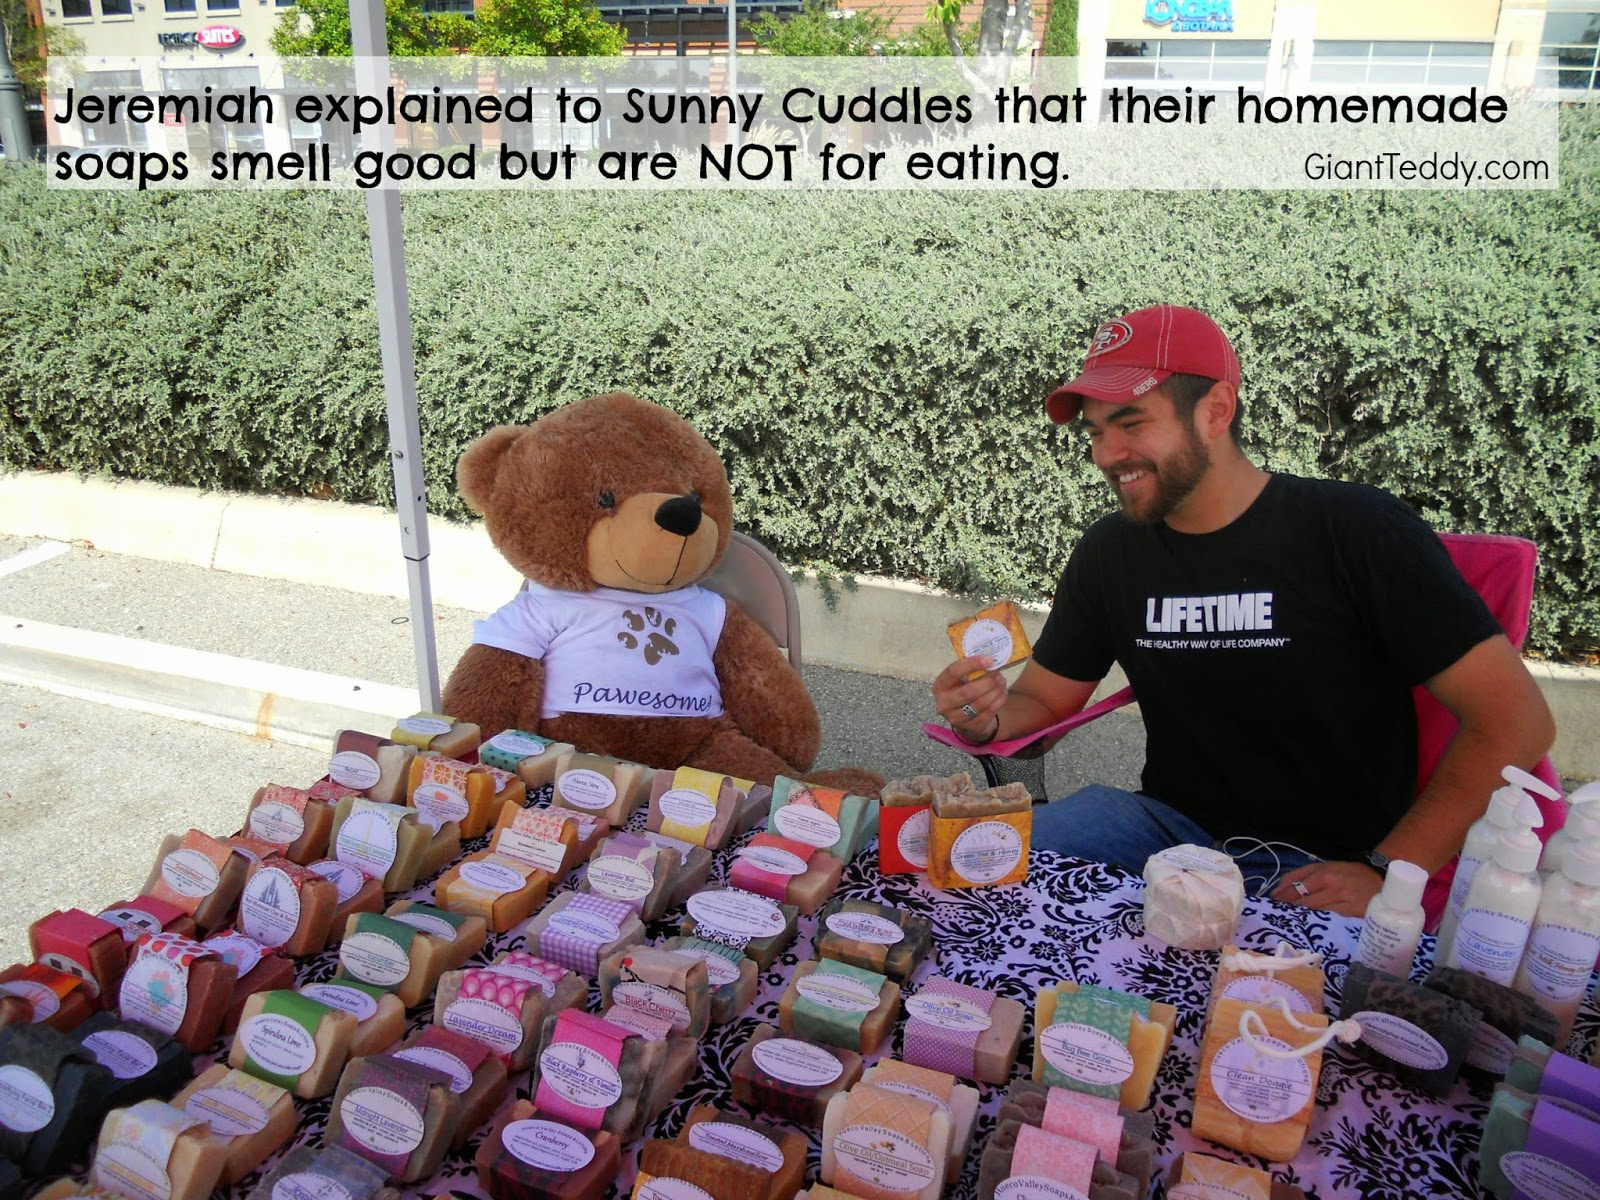 Giant Teddy bears might like a honey sugar scrub